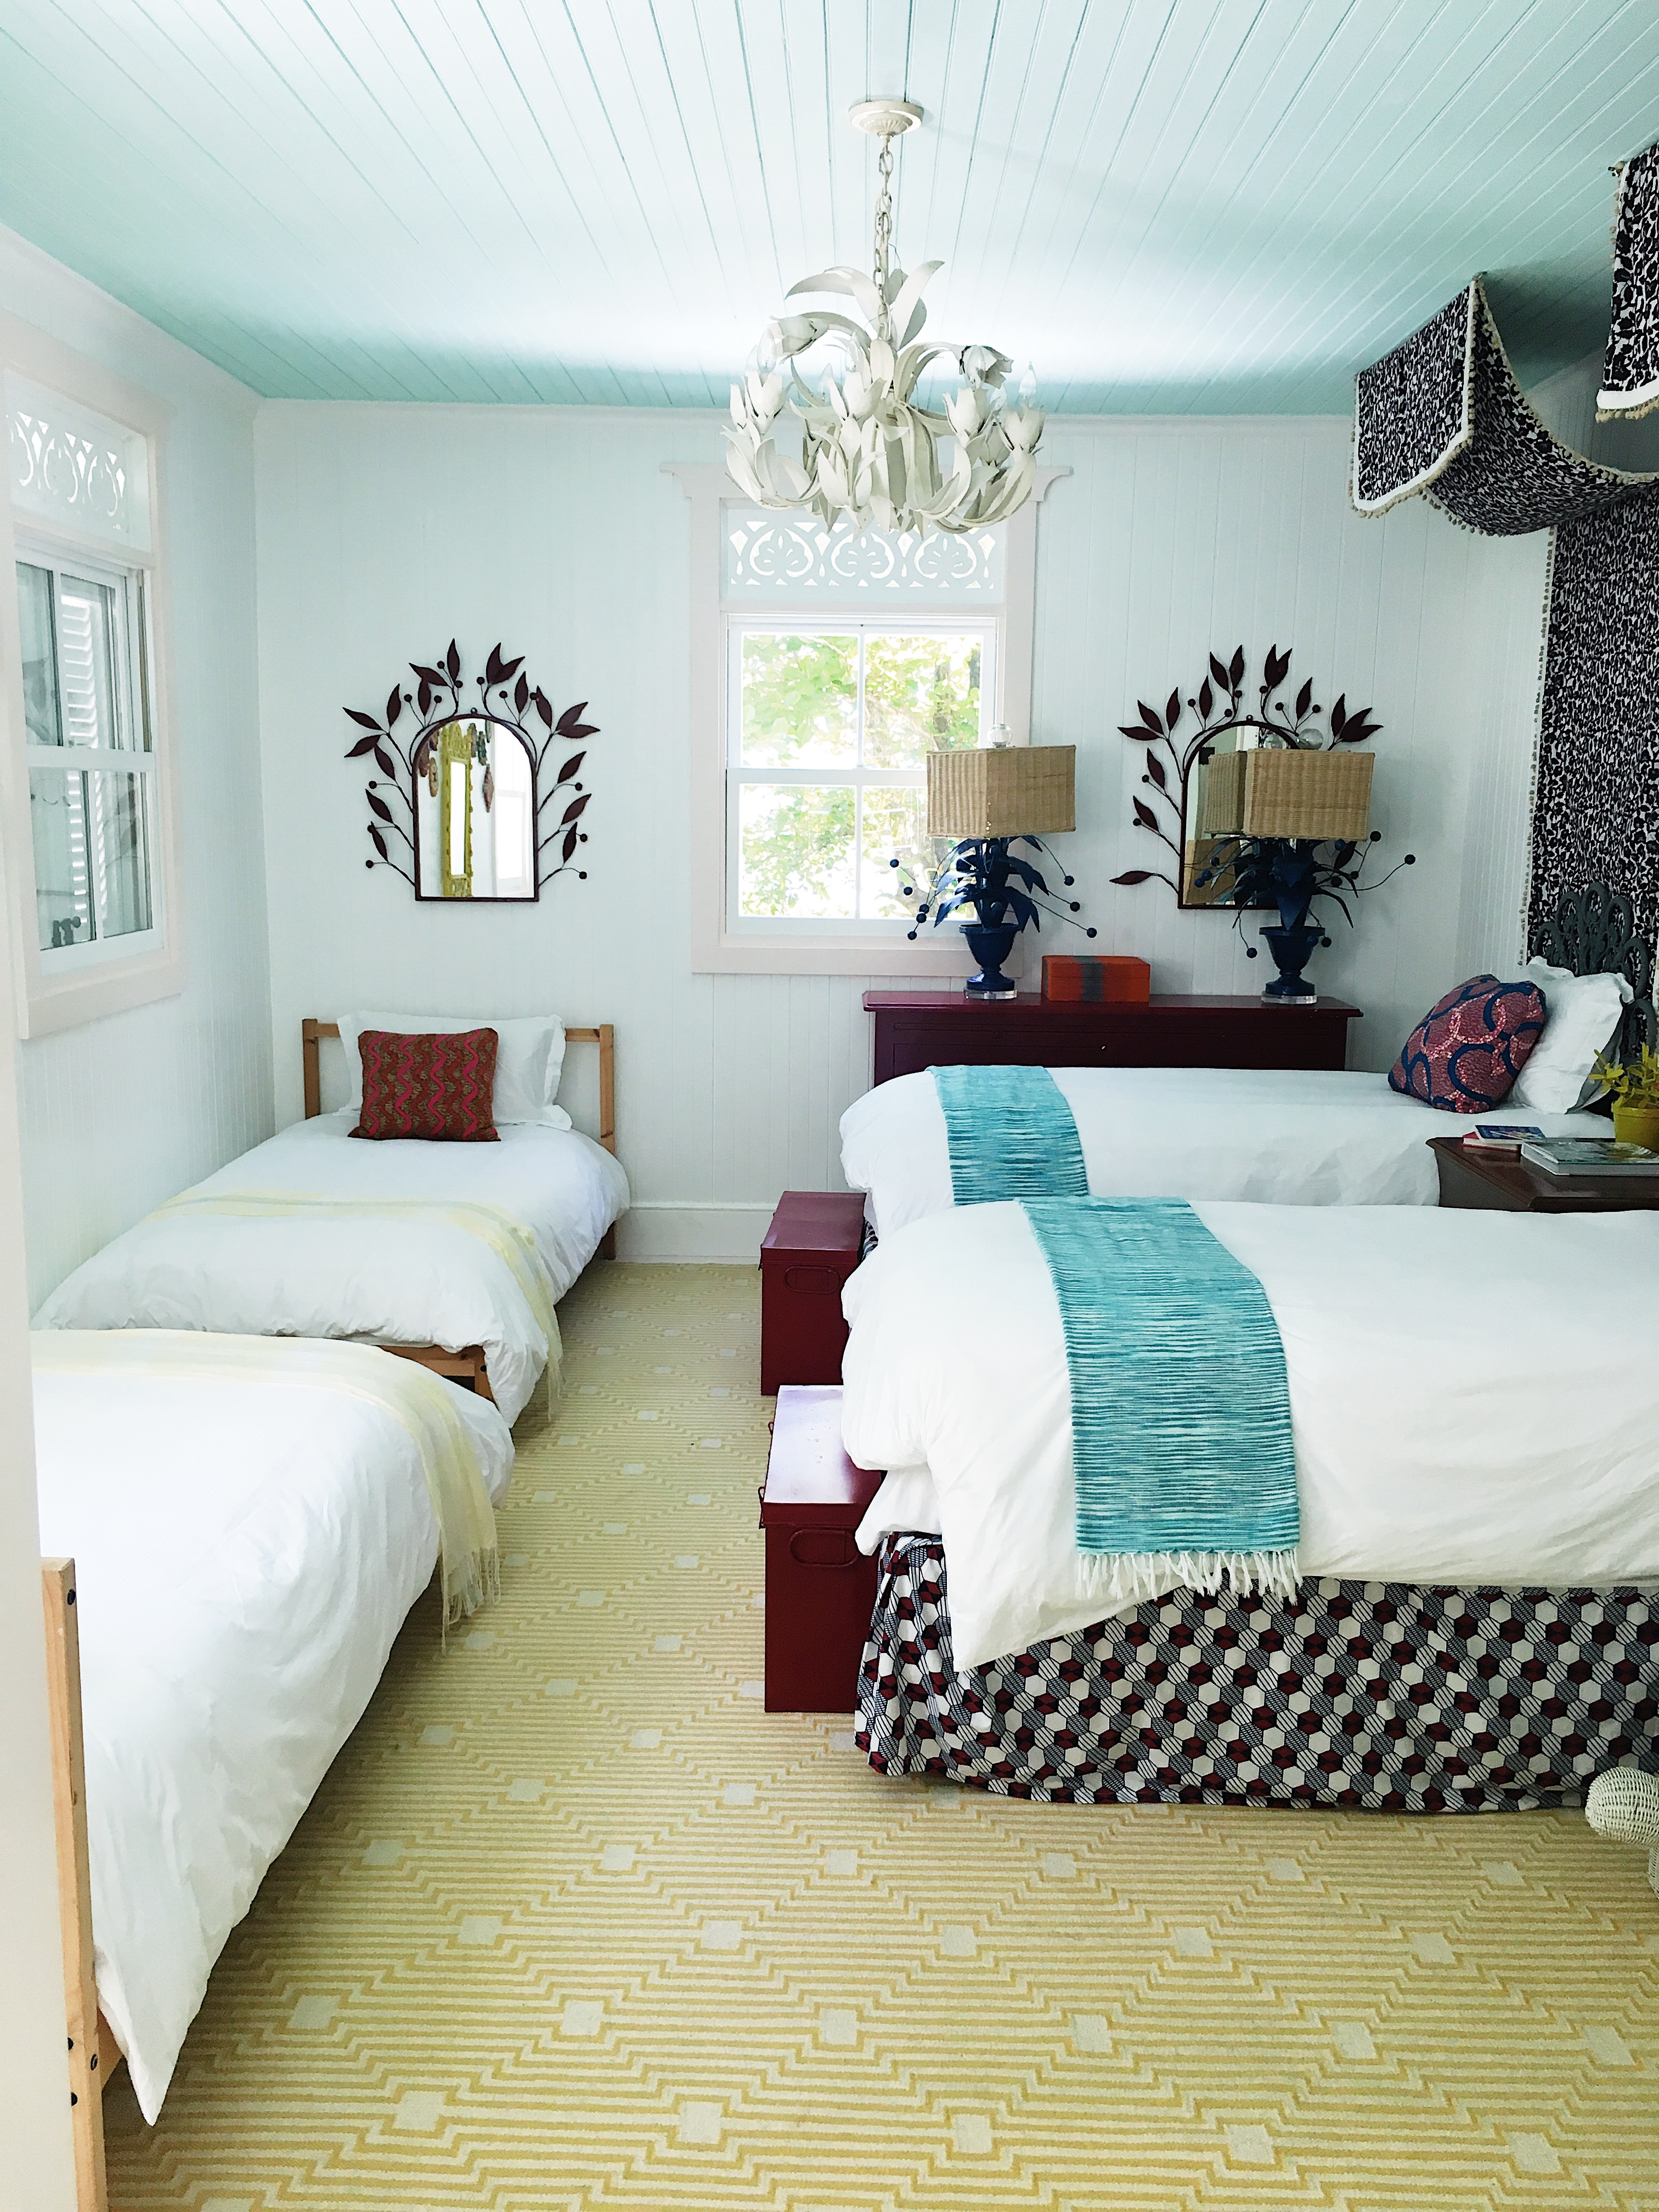 Fanciful bohemian bedroom island style cococozy for Island inspired bedrooms